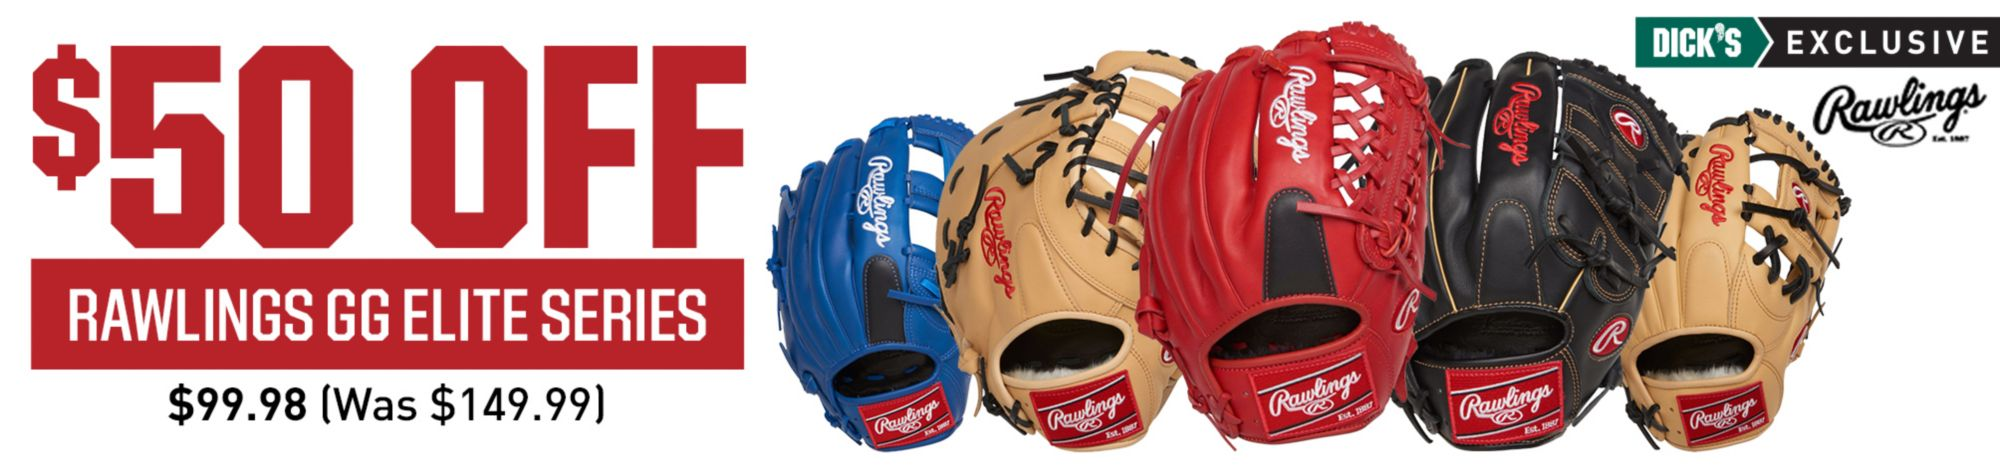 Shop Rawlings GG Elite Gloves